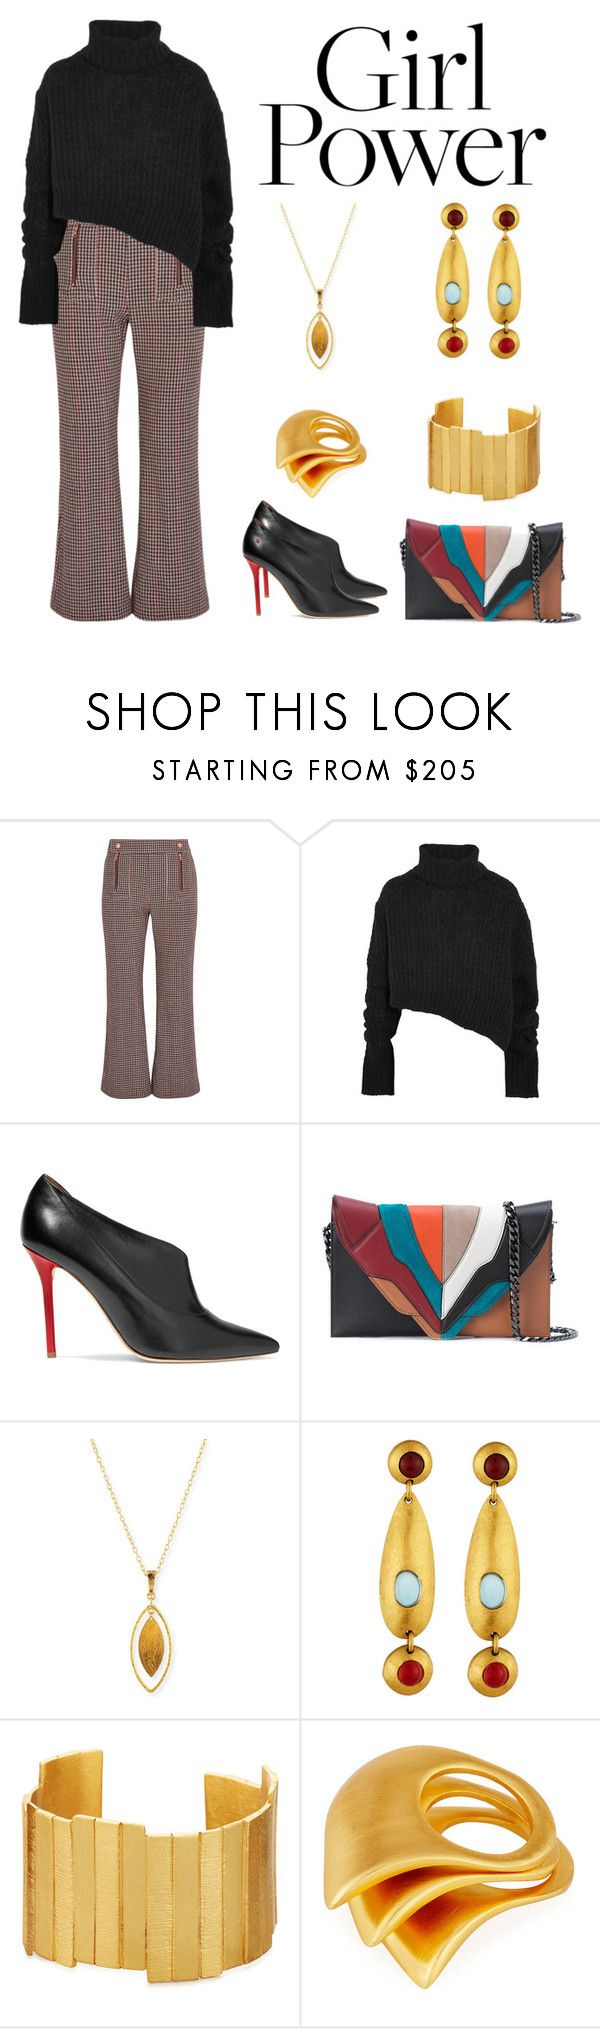 """""""Girl Power"""" by karen-galves ❤ liked on Polyvore featuring See by Chloé, Ann Demeulemeester, Malone Souliers, Elena Ghisellini, Gurhan and Stephanie Kantis"""